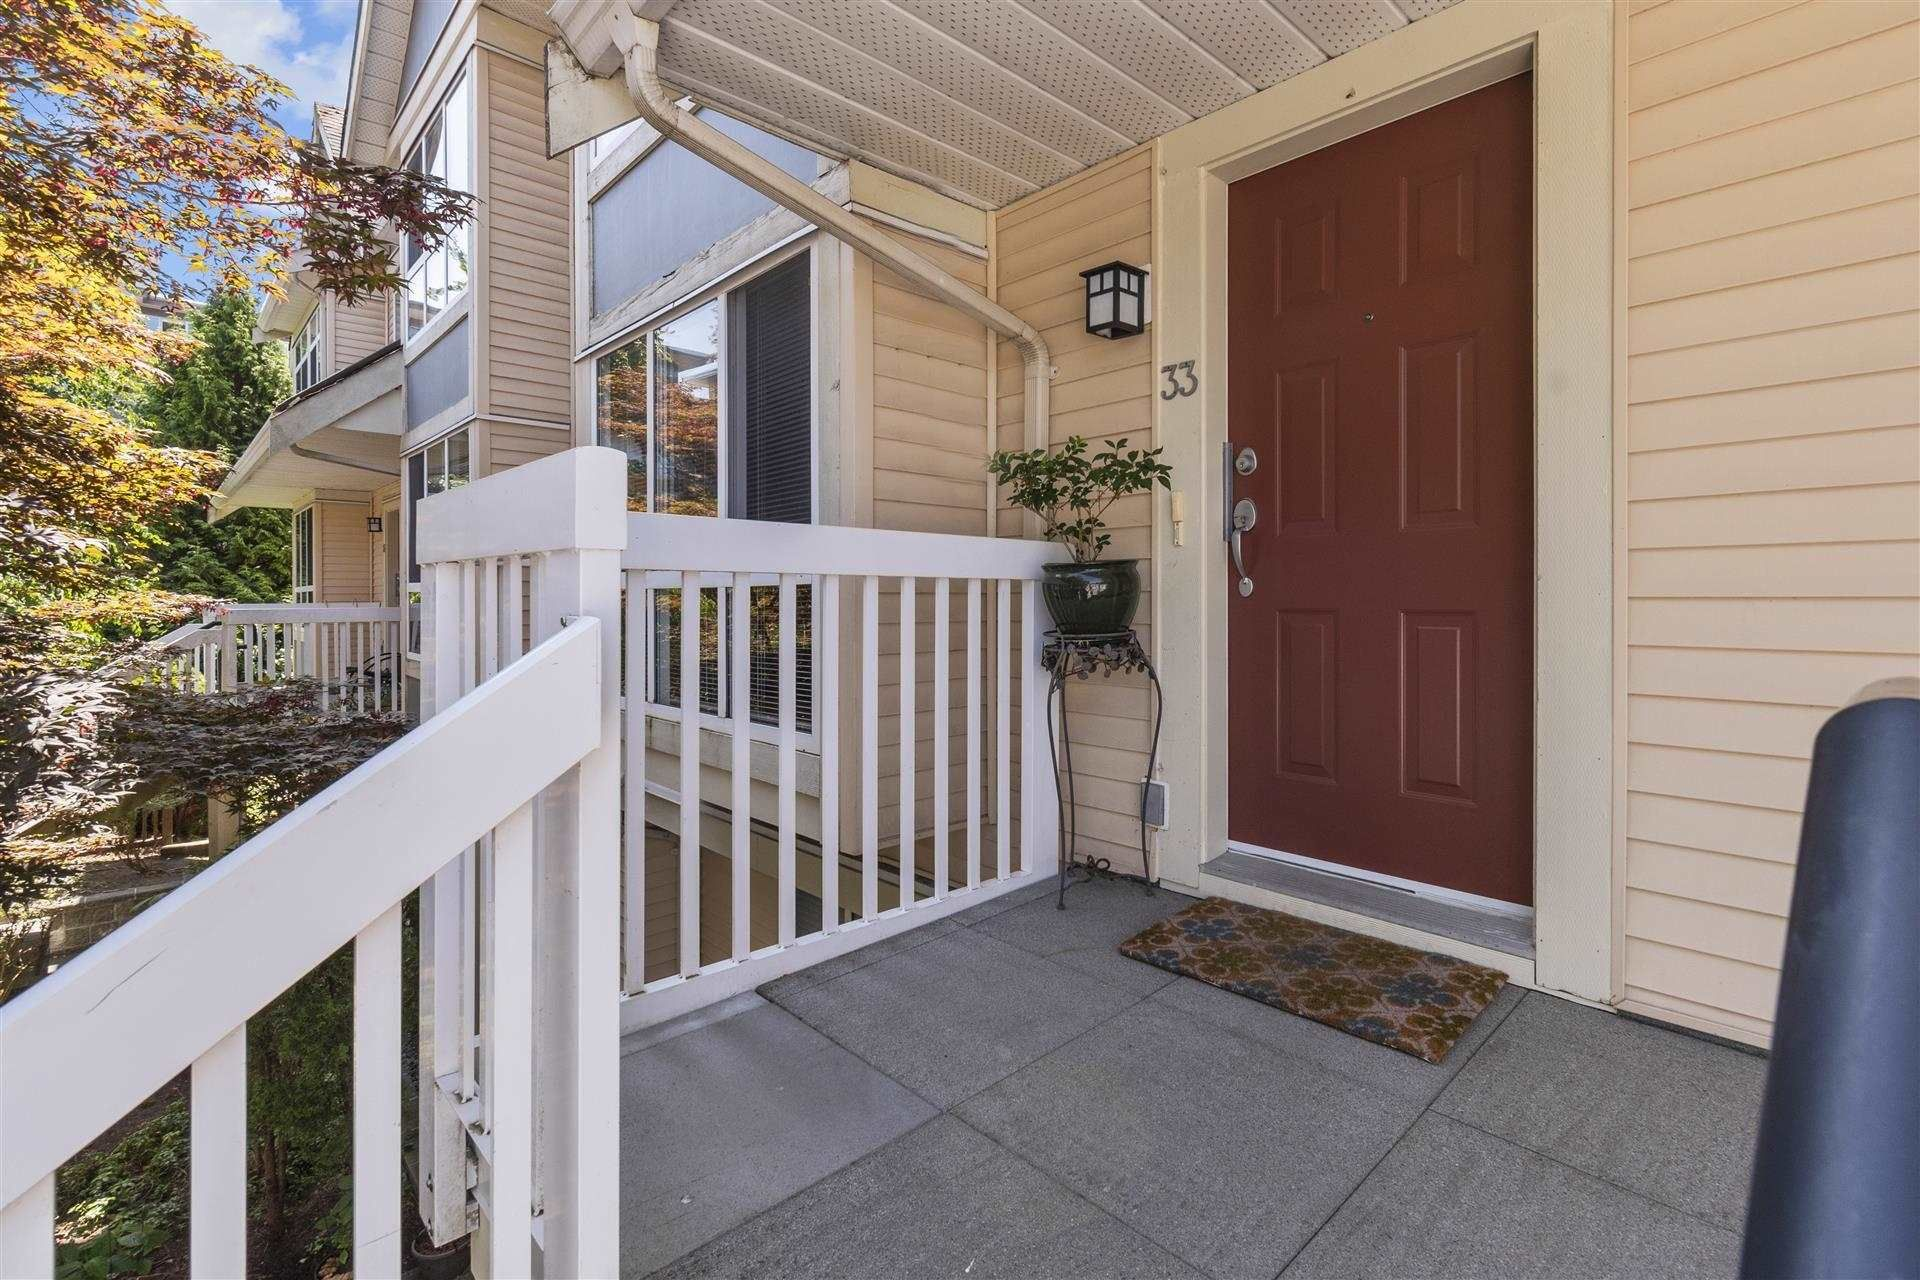 """Main Photo: 33 7128 STRIDE Avenue in Burnaby: Edmonds BE Townhouse for sale in """"RIVER STONE"""" (Burnaby East)  : MLS®# R2605179"""